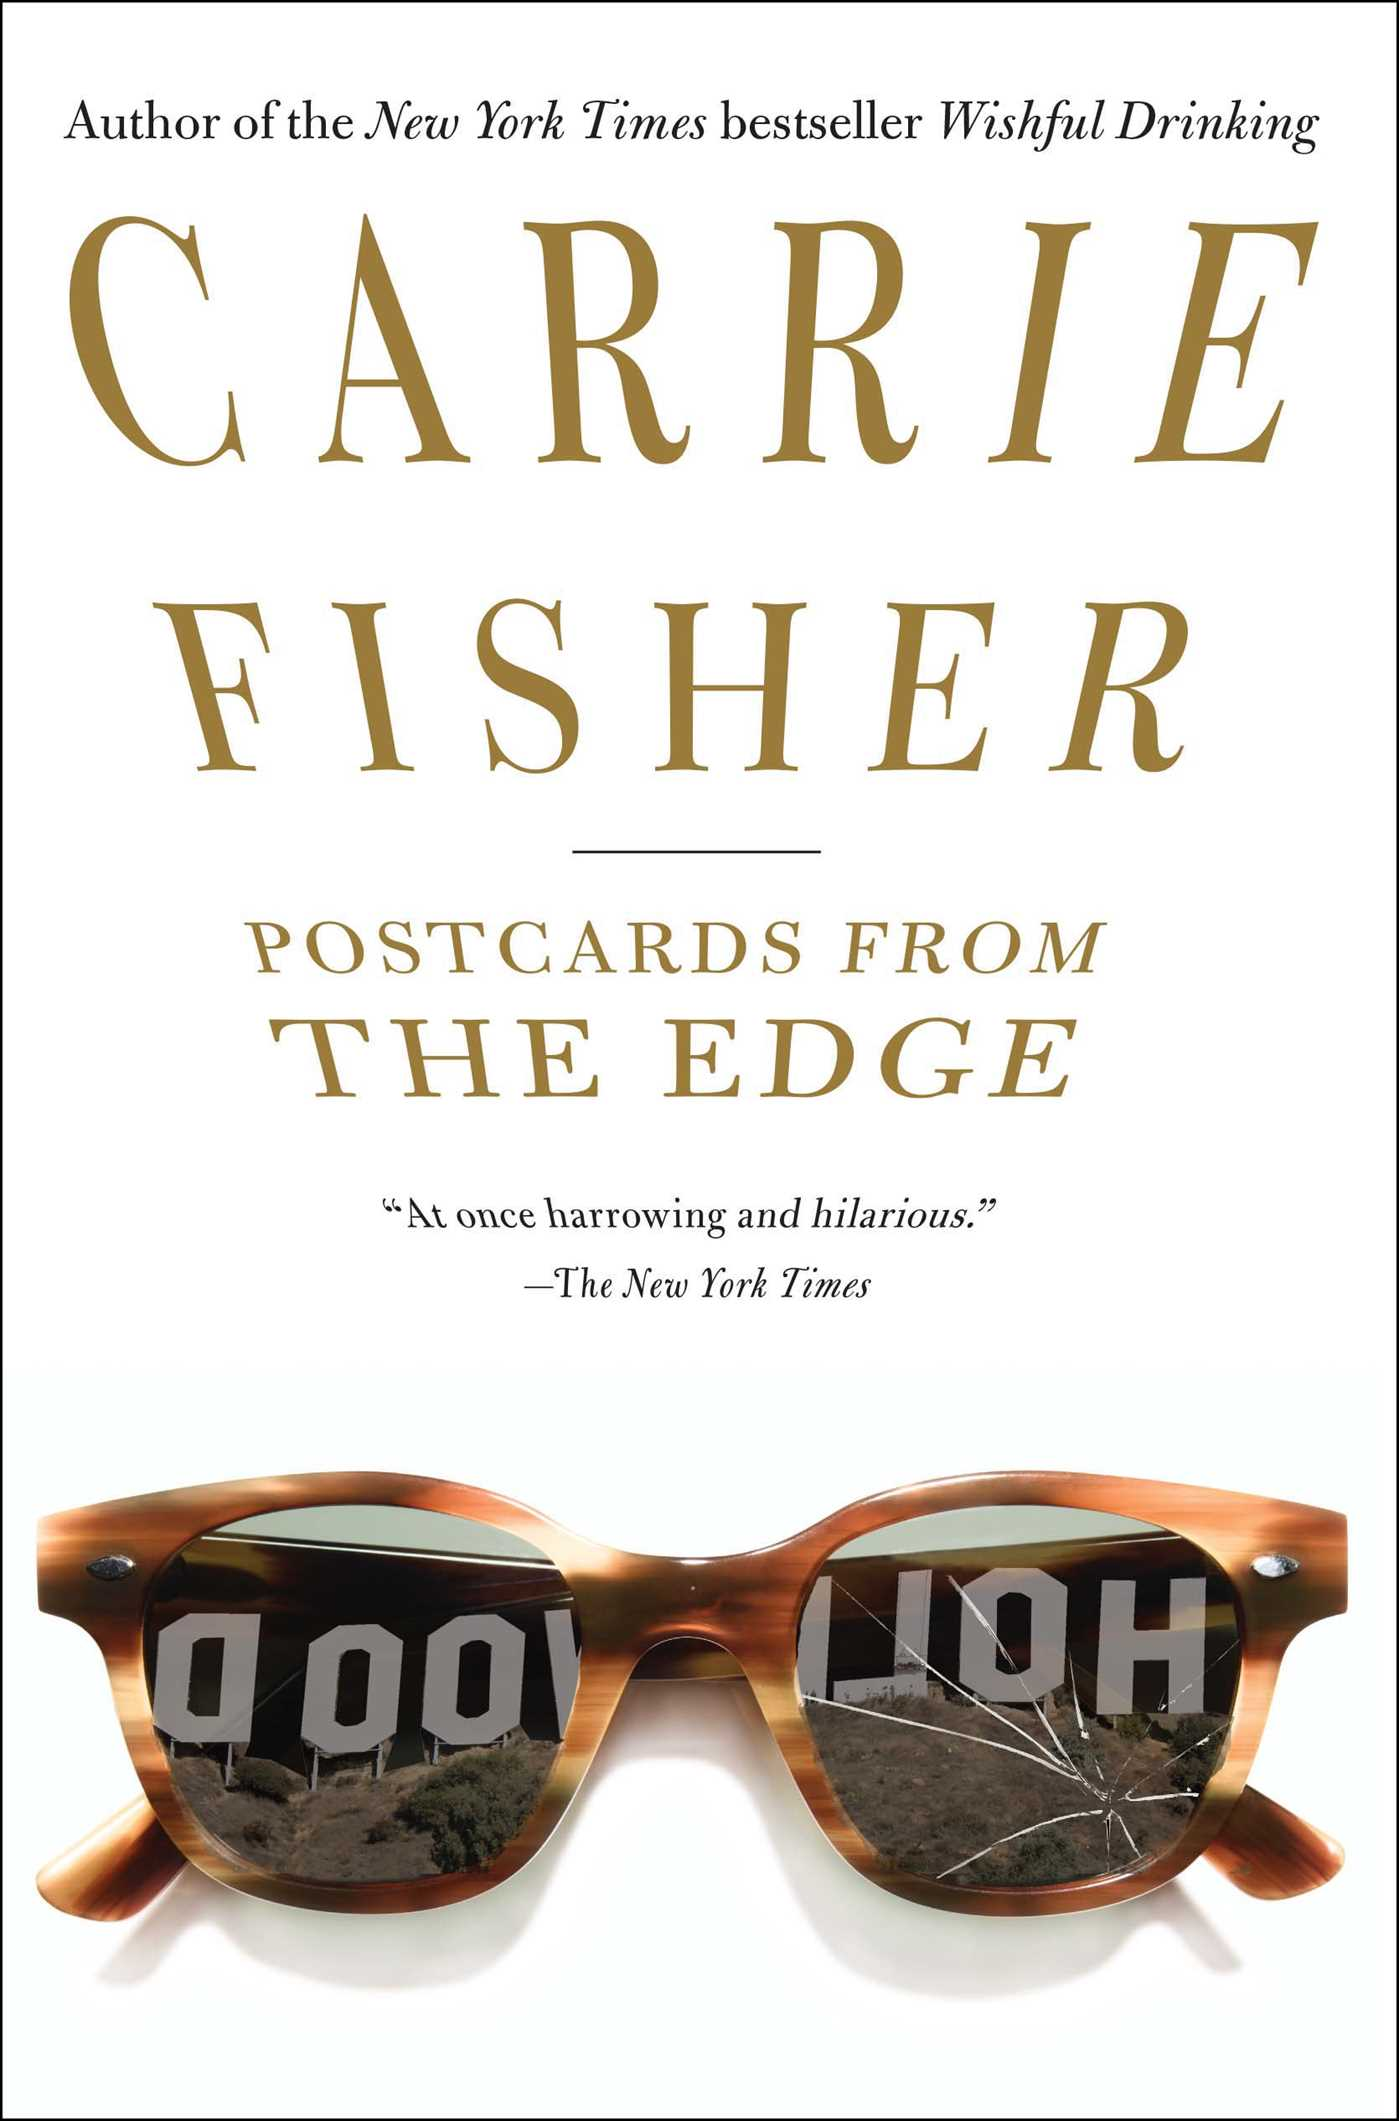 postcards from the edge book by carrie fisher official